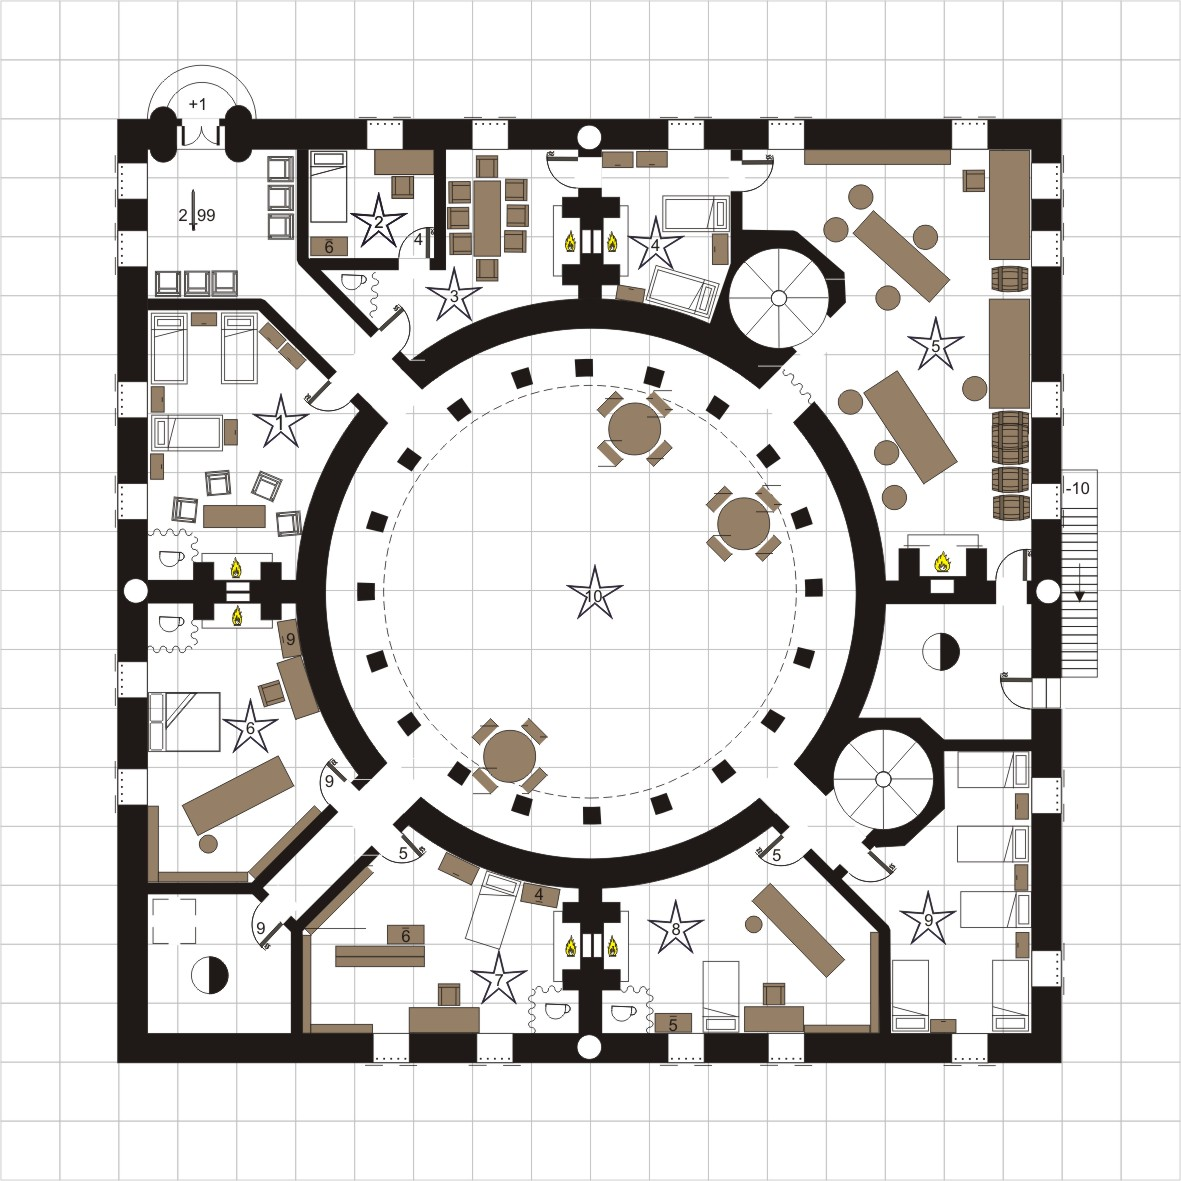 Guild of Arcane Lore. I drew this in CorelDraw 11 for an RPG campaign using Harnworld. This is just the ground floor.